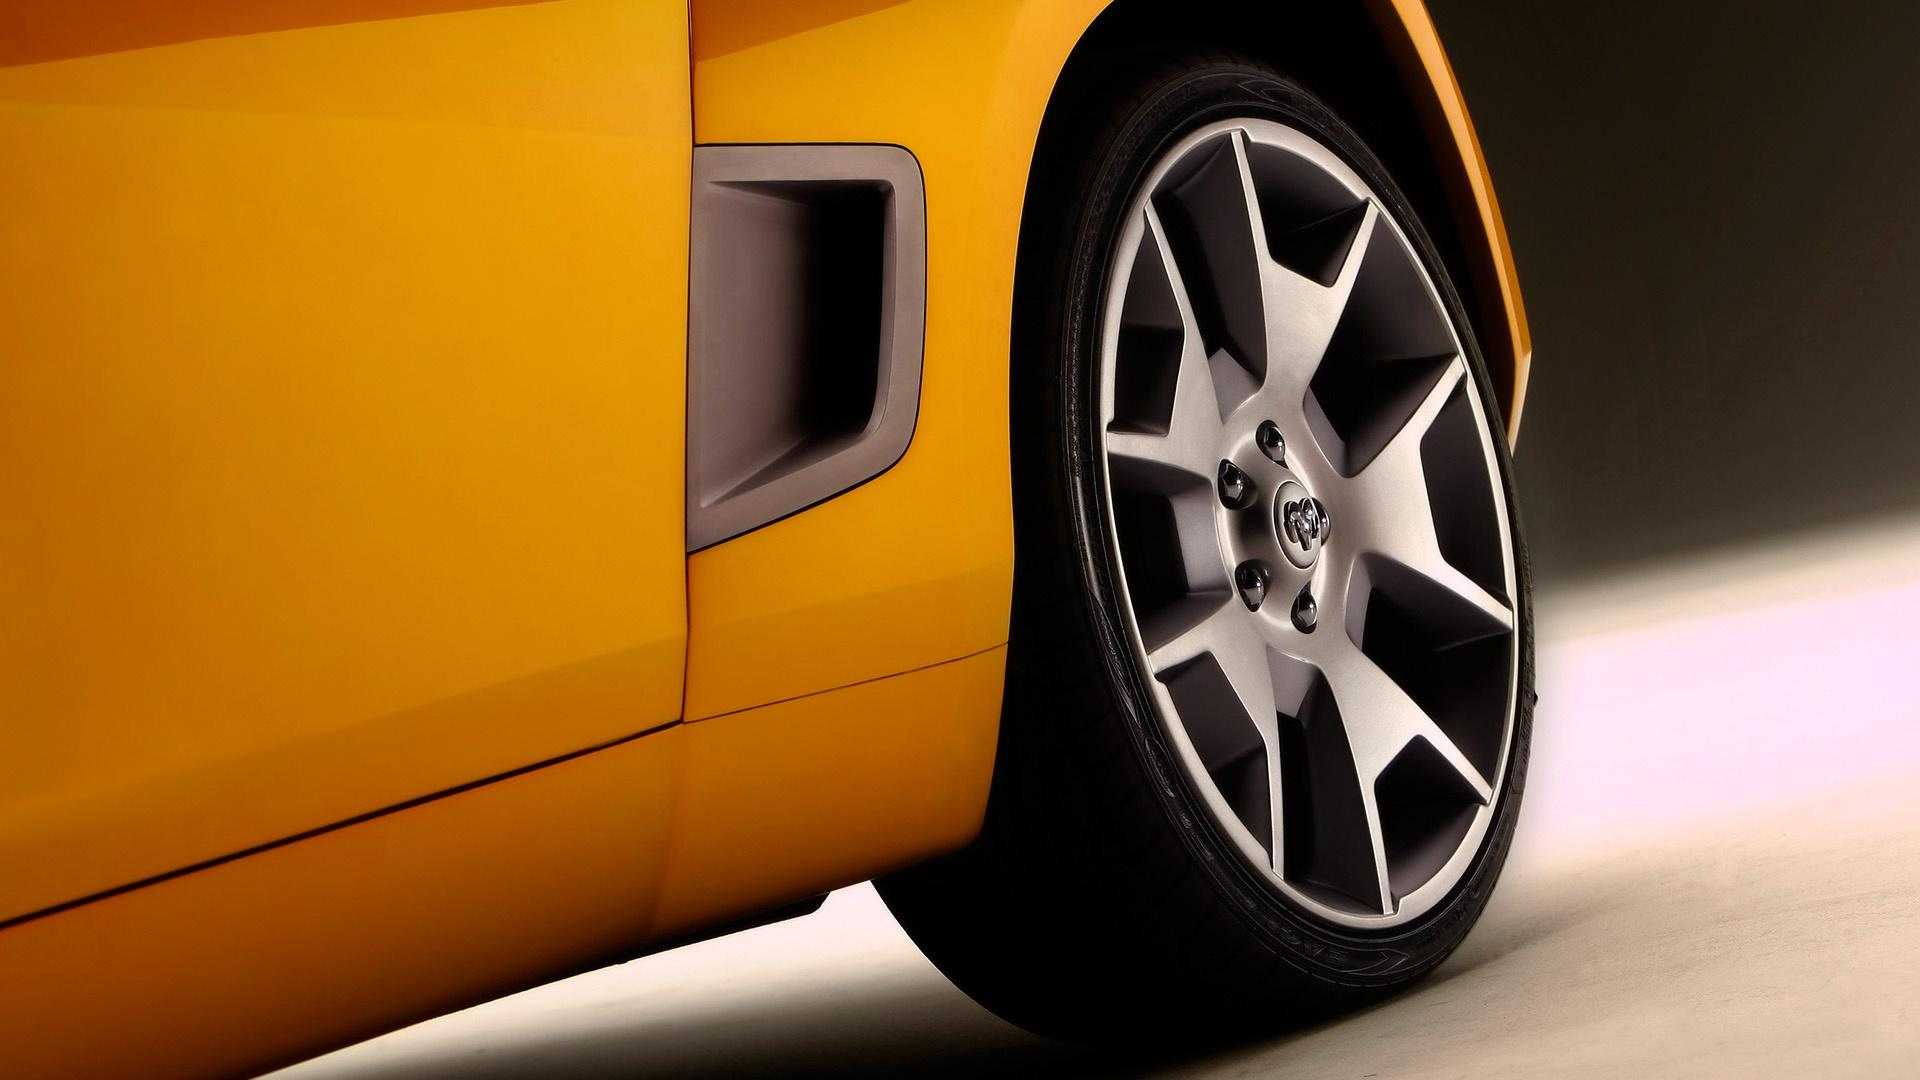 2007 Dodge Demon Roadster Concept Rear Vent 1920x1080